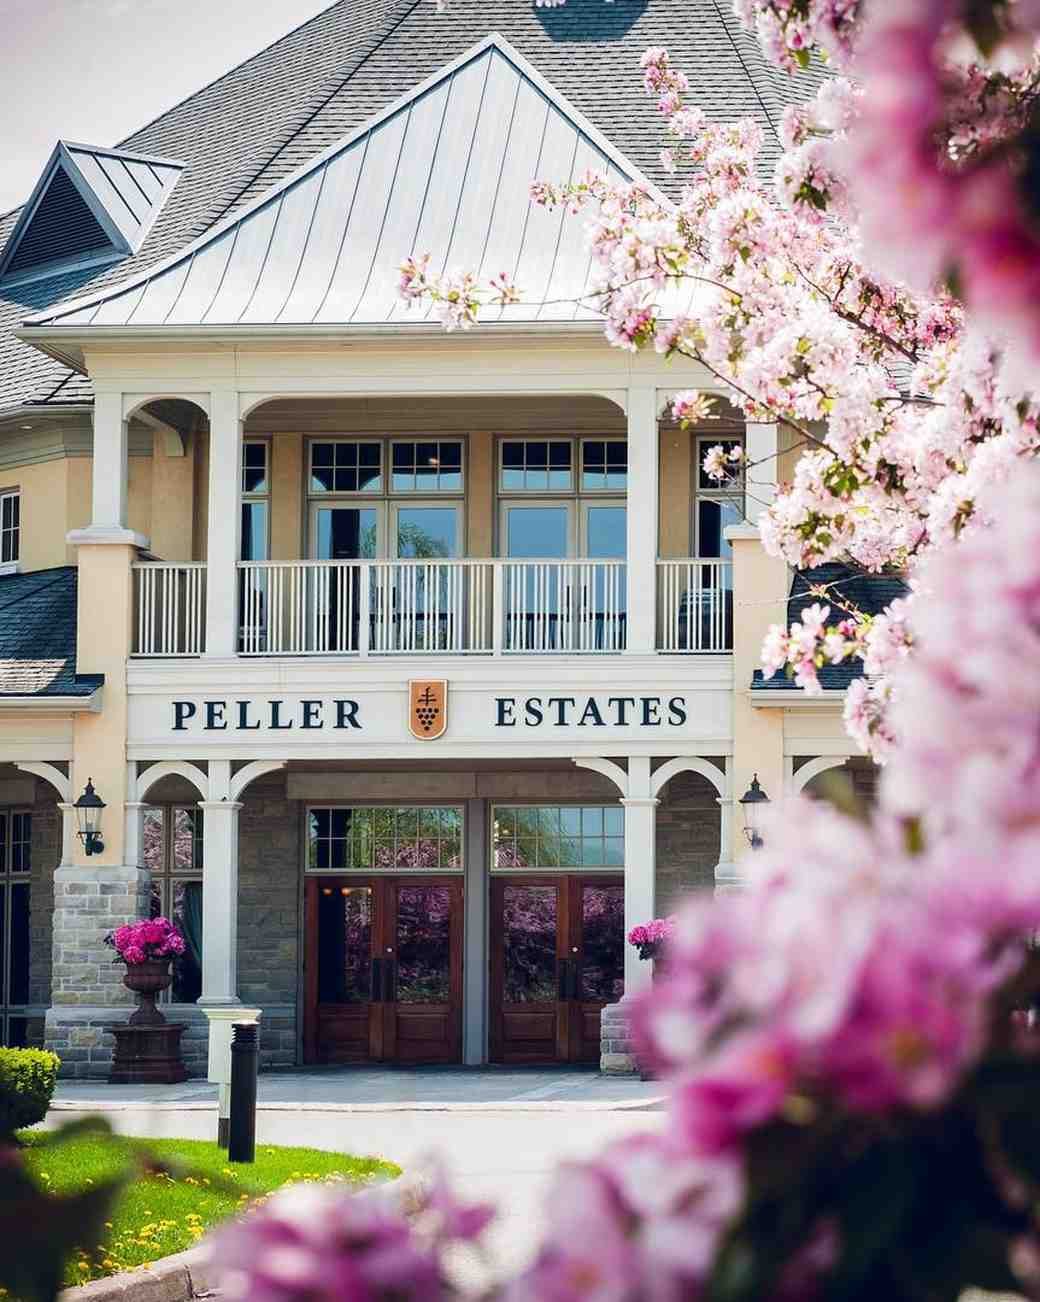 peller estates niagara on the lake